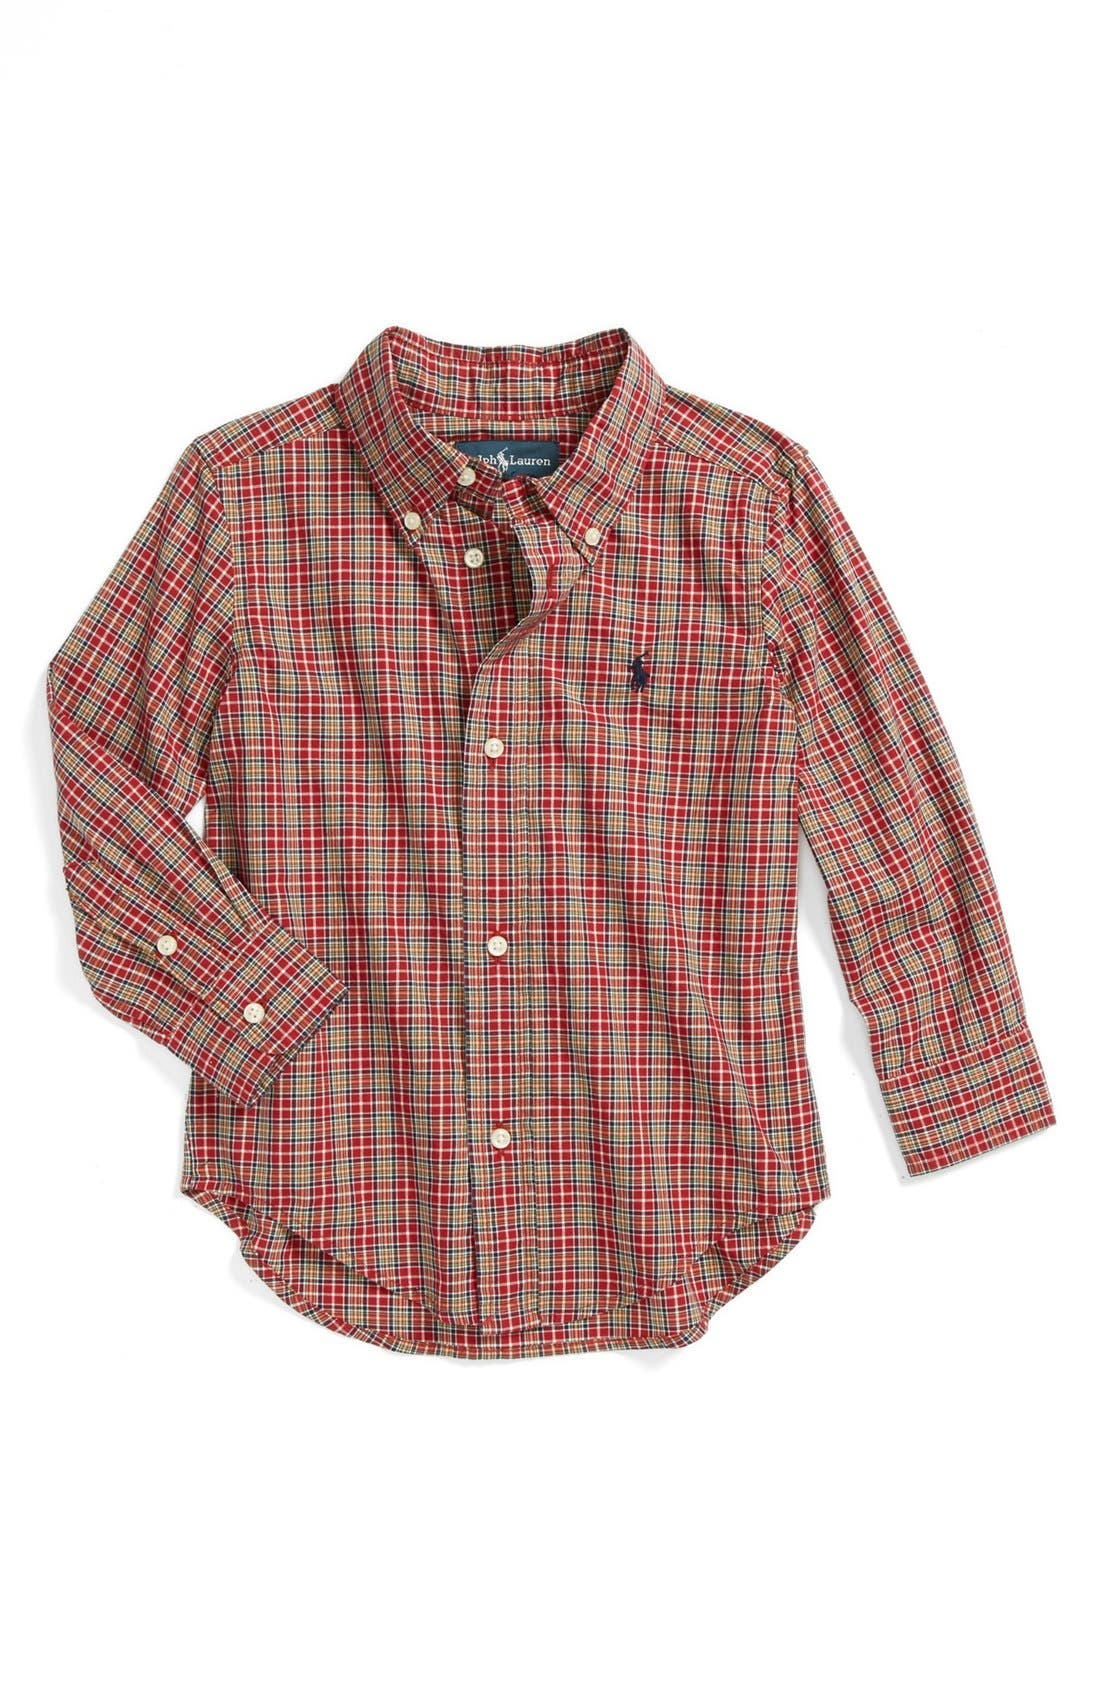 Alternate Image 1 Selected - Ralph Lauren 'Blake' Sport Shirt (Toddler Boys)